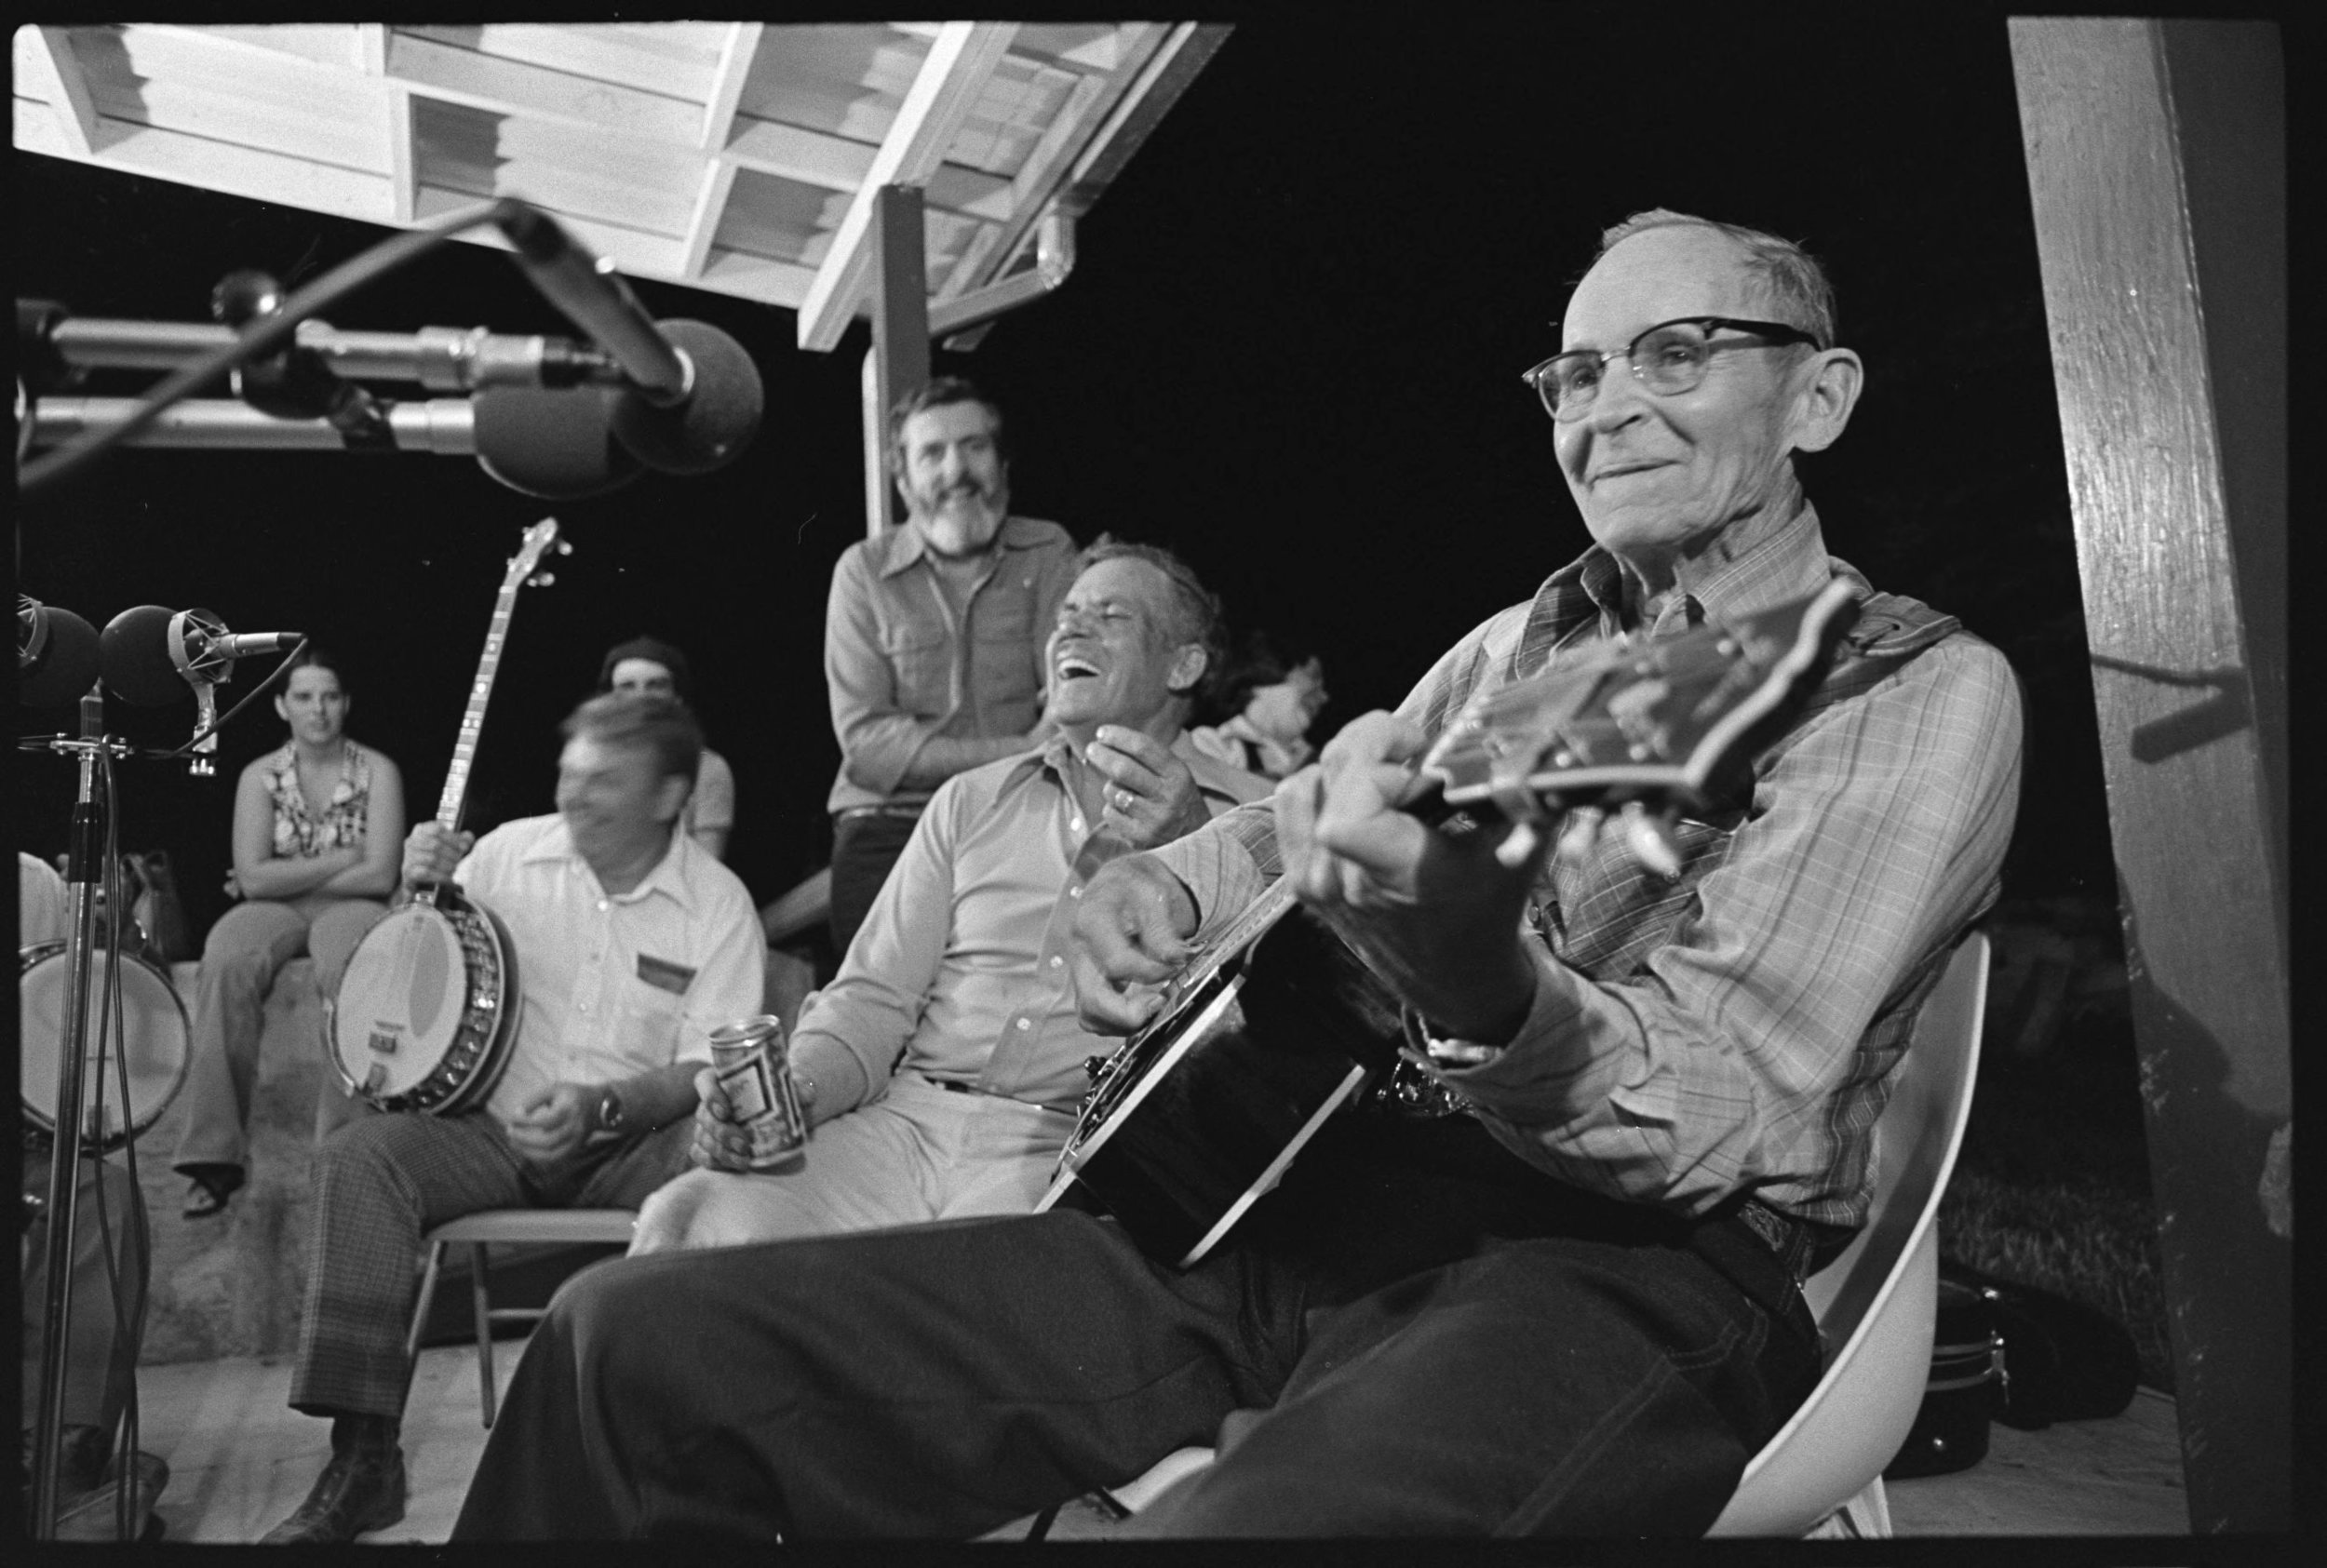 PHOTOGRAPH: Old time fiddling at Bernie Rasmussen's in Polson, Montana, July 22, 1979, from the  Montana Folklife Survey collection  at the Library of Congress.